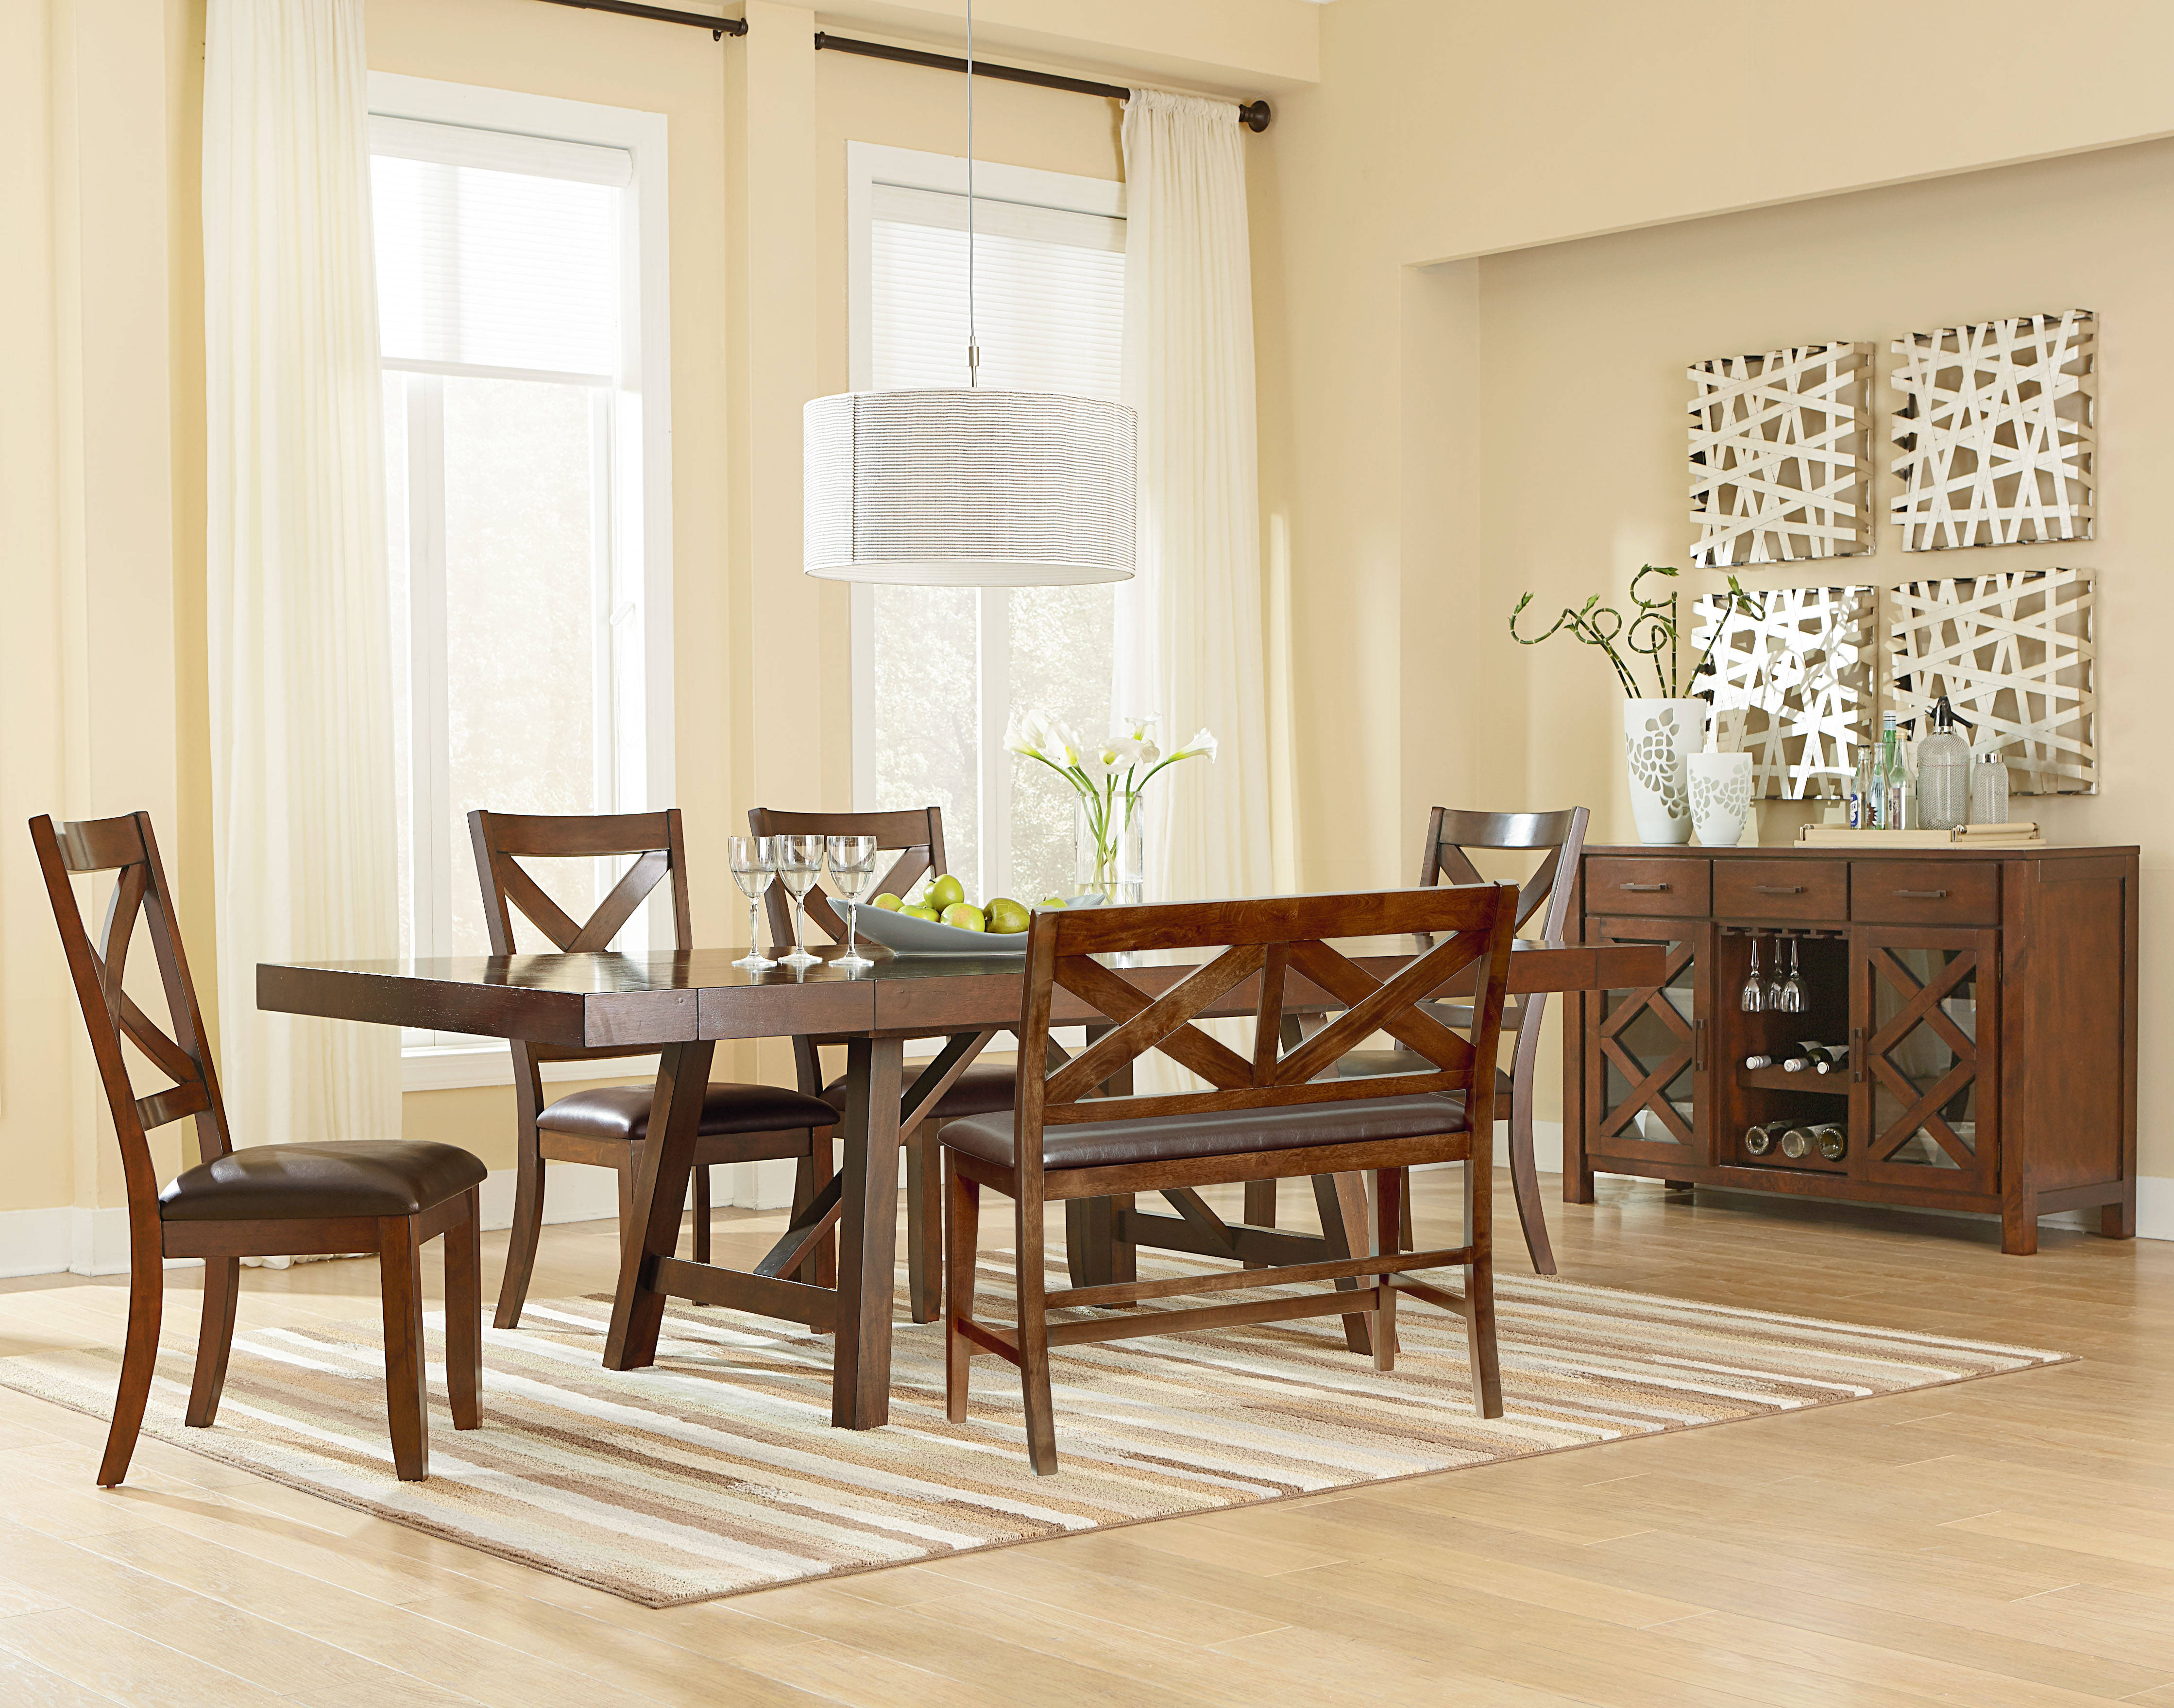 Standard Furniture Omaha Saddle Brown Extension 7pc Dining Room Set The Classy Home